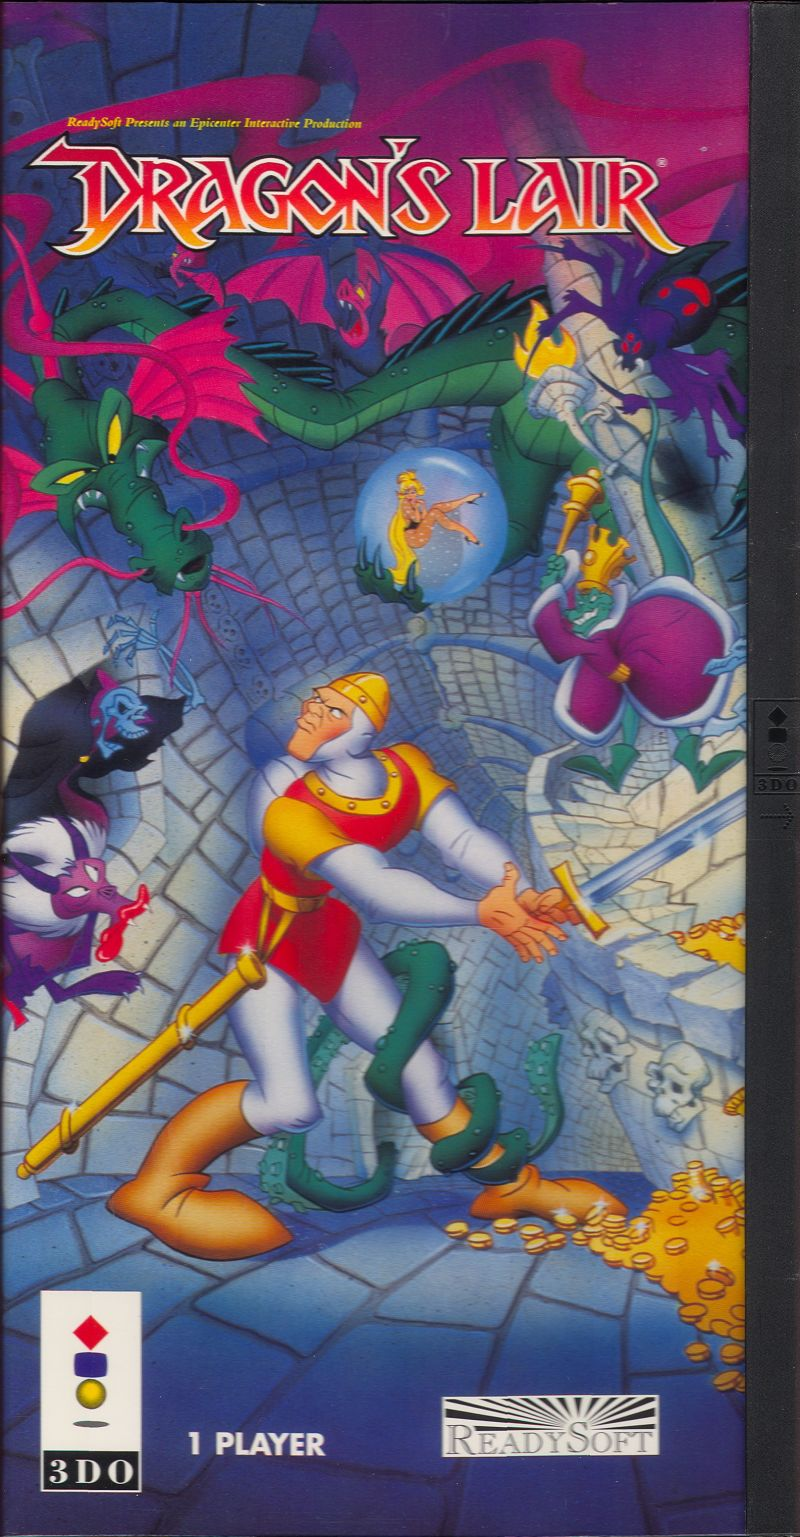 Dragon 39 s lair details launchbox games database for Dragon s lair